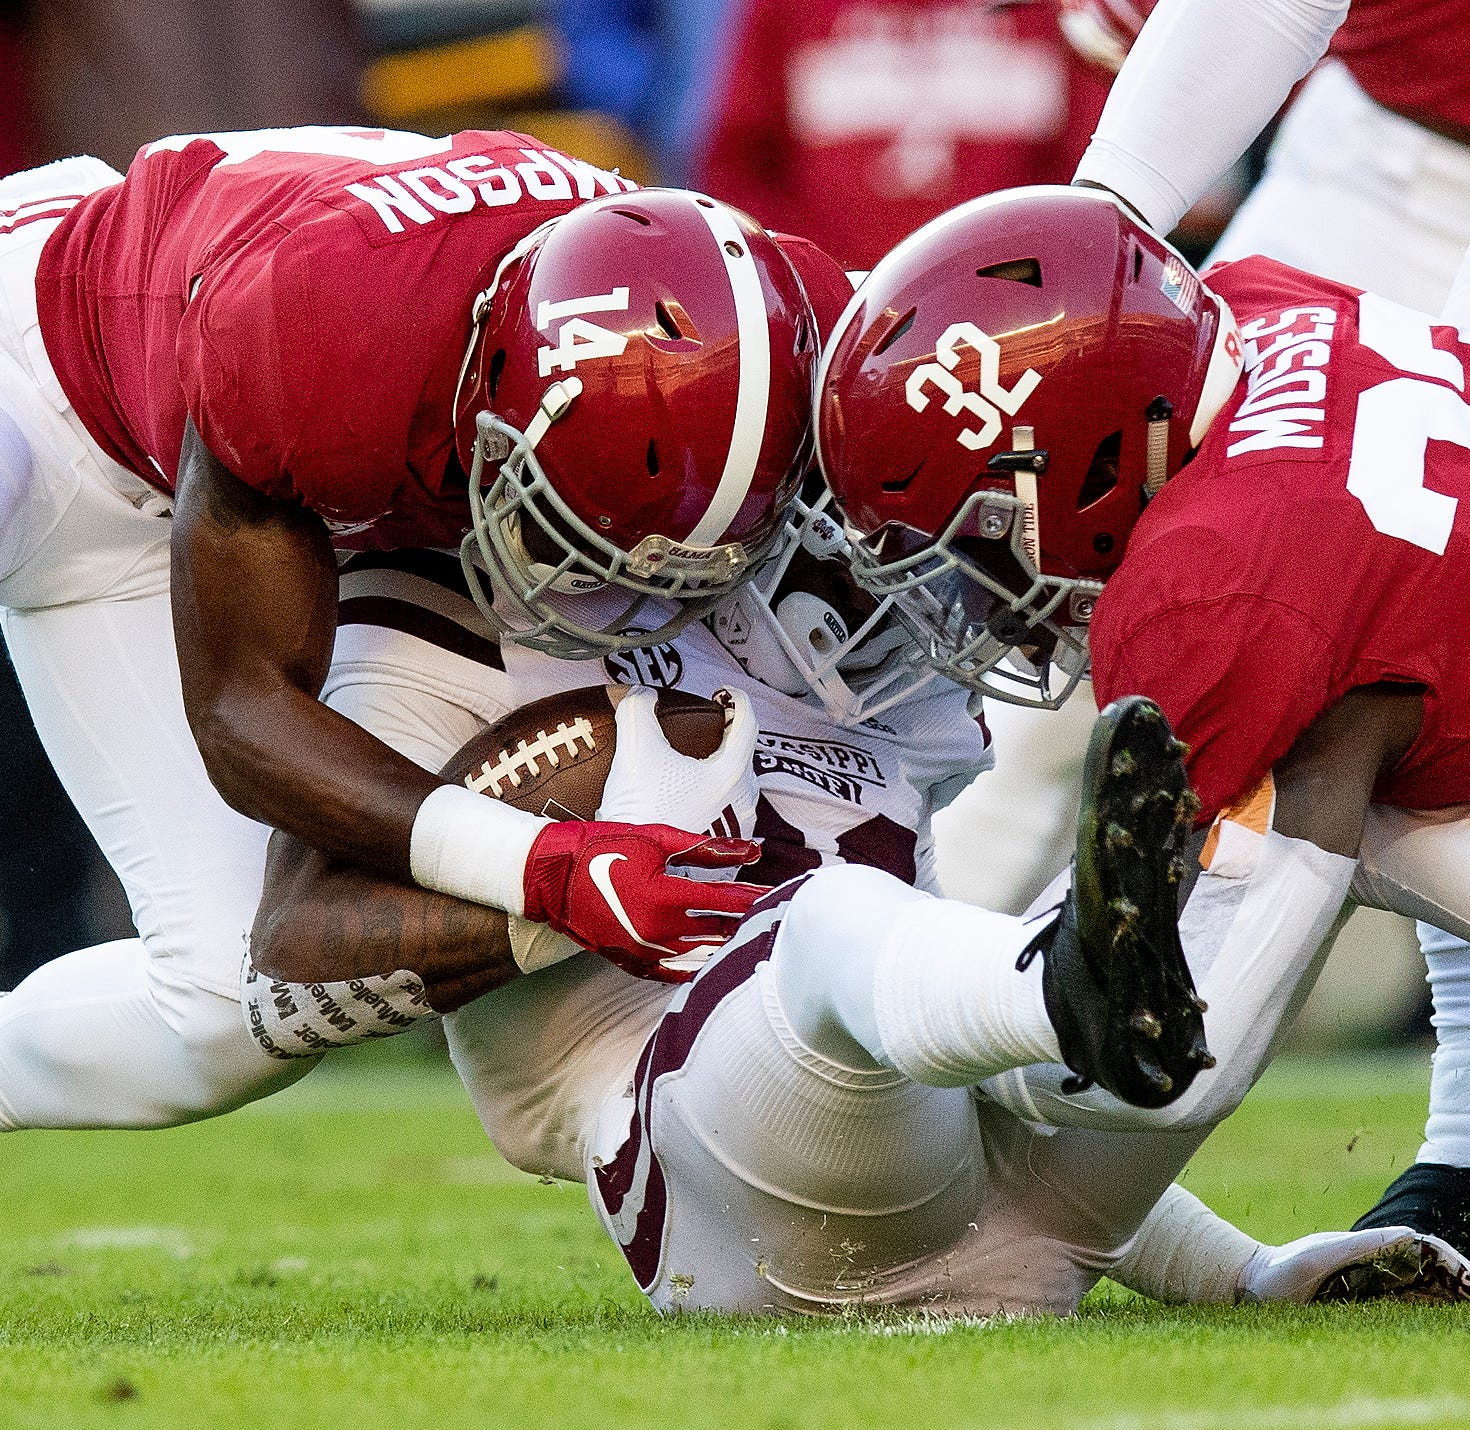 The LSU effect is real, but the Alabama juggernaut rolls on